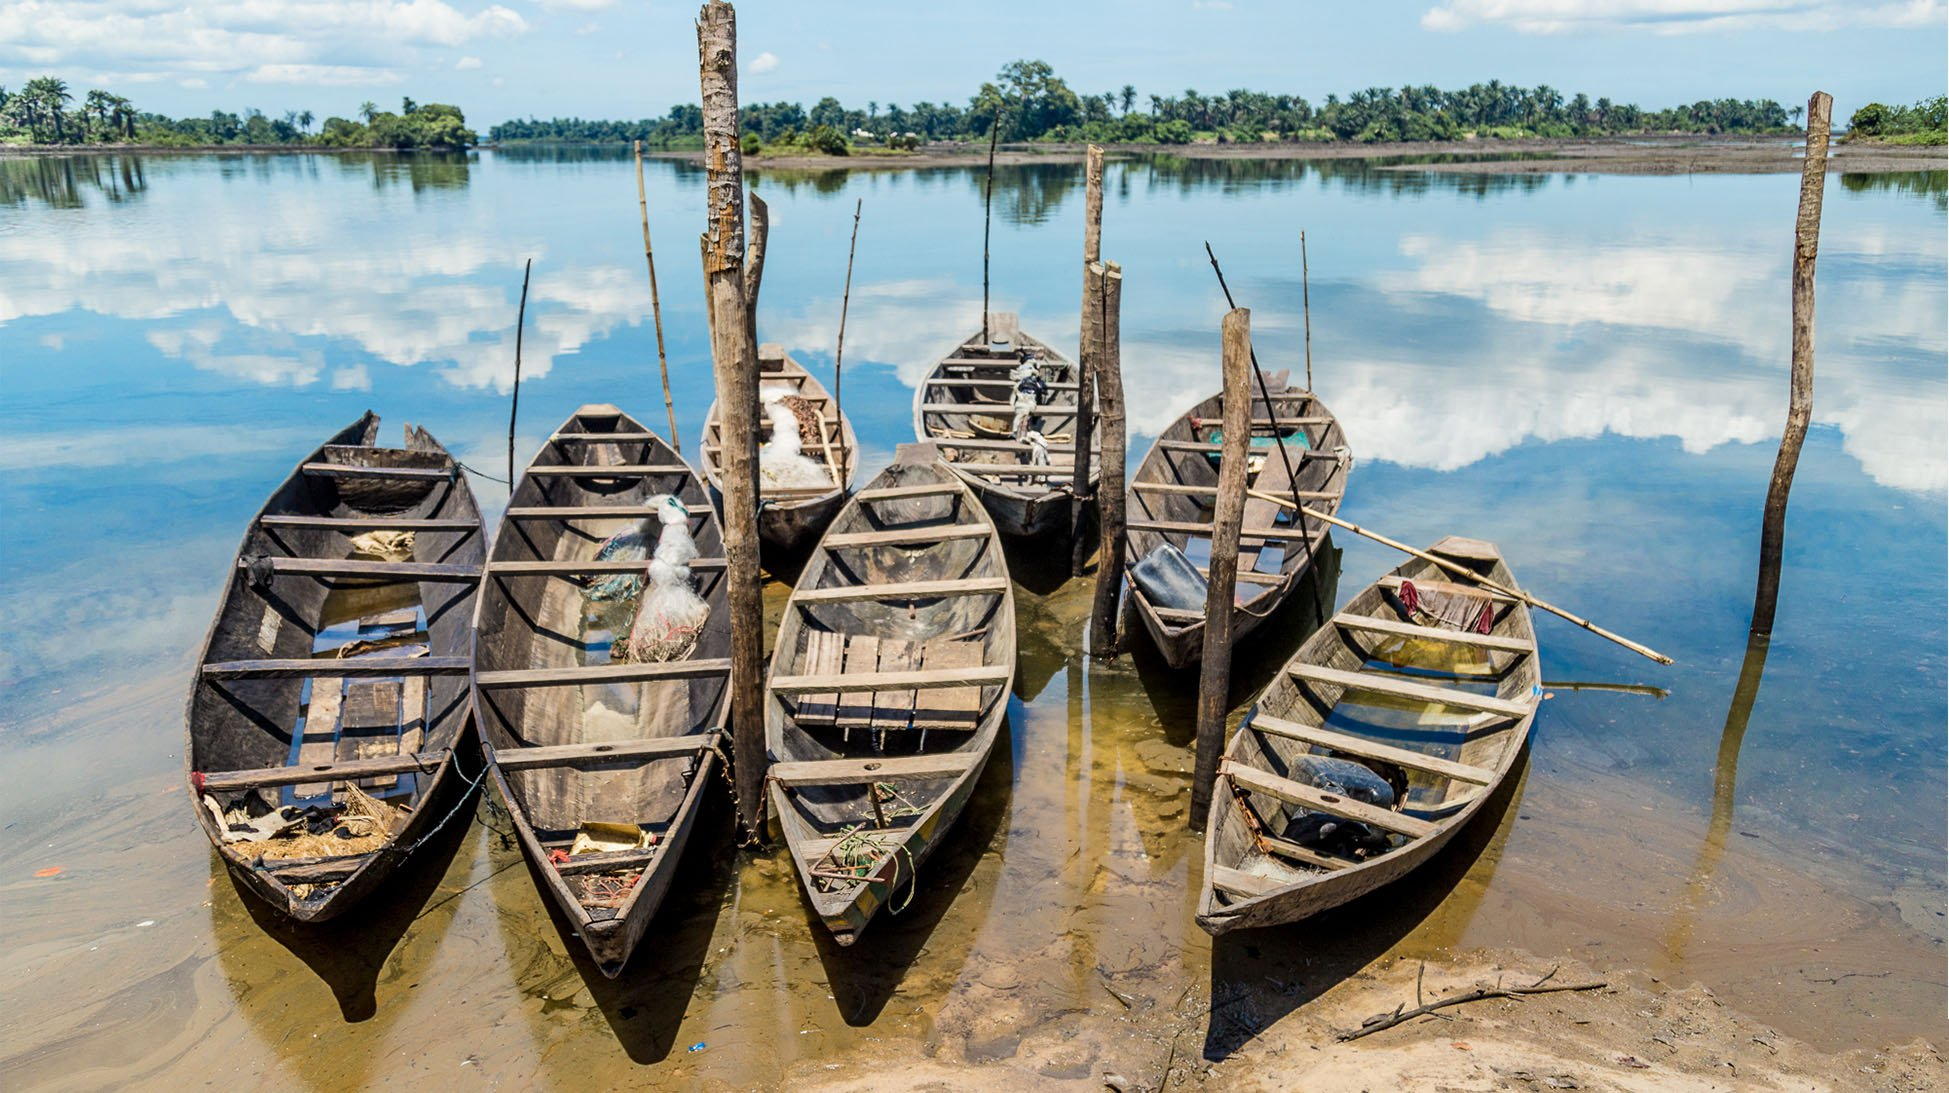 How Blockchain Technology is Helping to Clean the Niger River